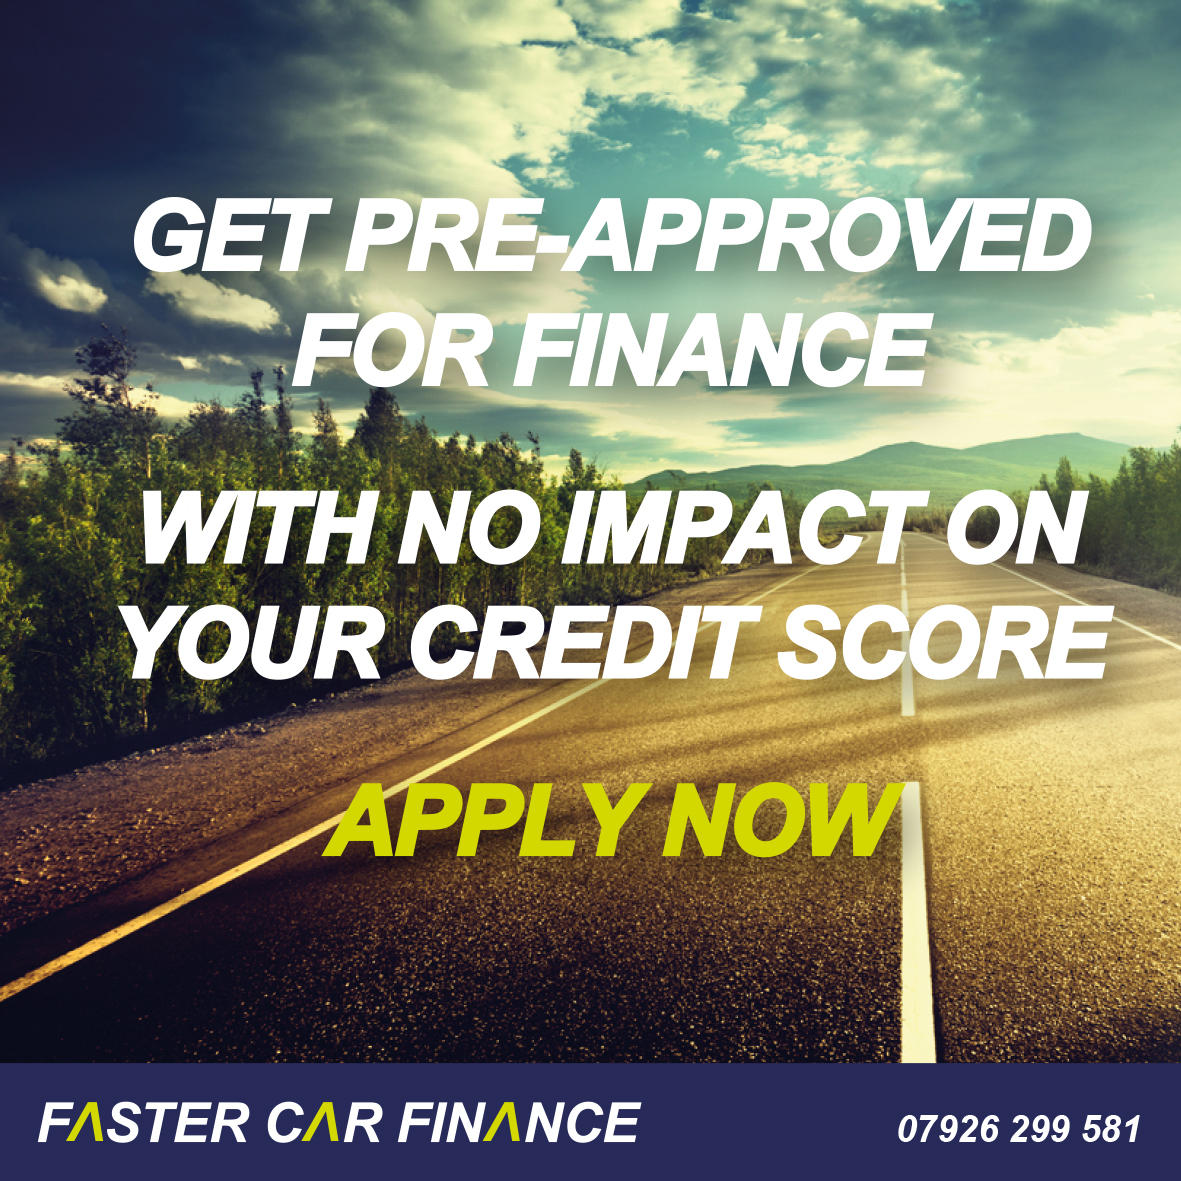 We have a dedicated team of finance experts waiting to help with your enquiry - apply online at http://www.fastercarfinance.co.uk :)  #carfinance #carsonfinance #carleasing #leasing #cars #carsales #carshopping #carsforsale #liverpool #manchester #cheshirepic.twitter.com/2a4pAsFb4M